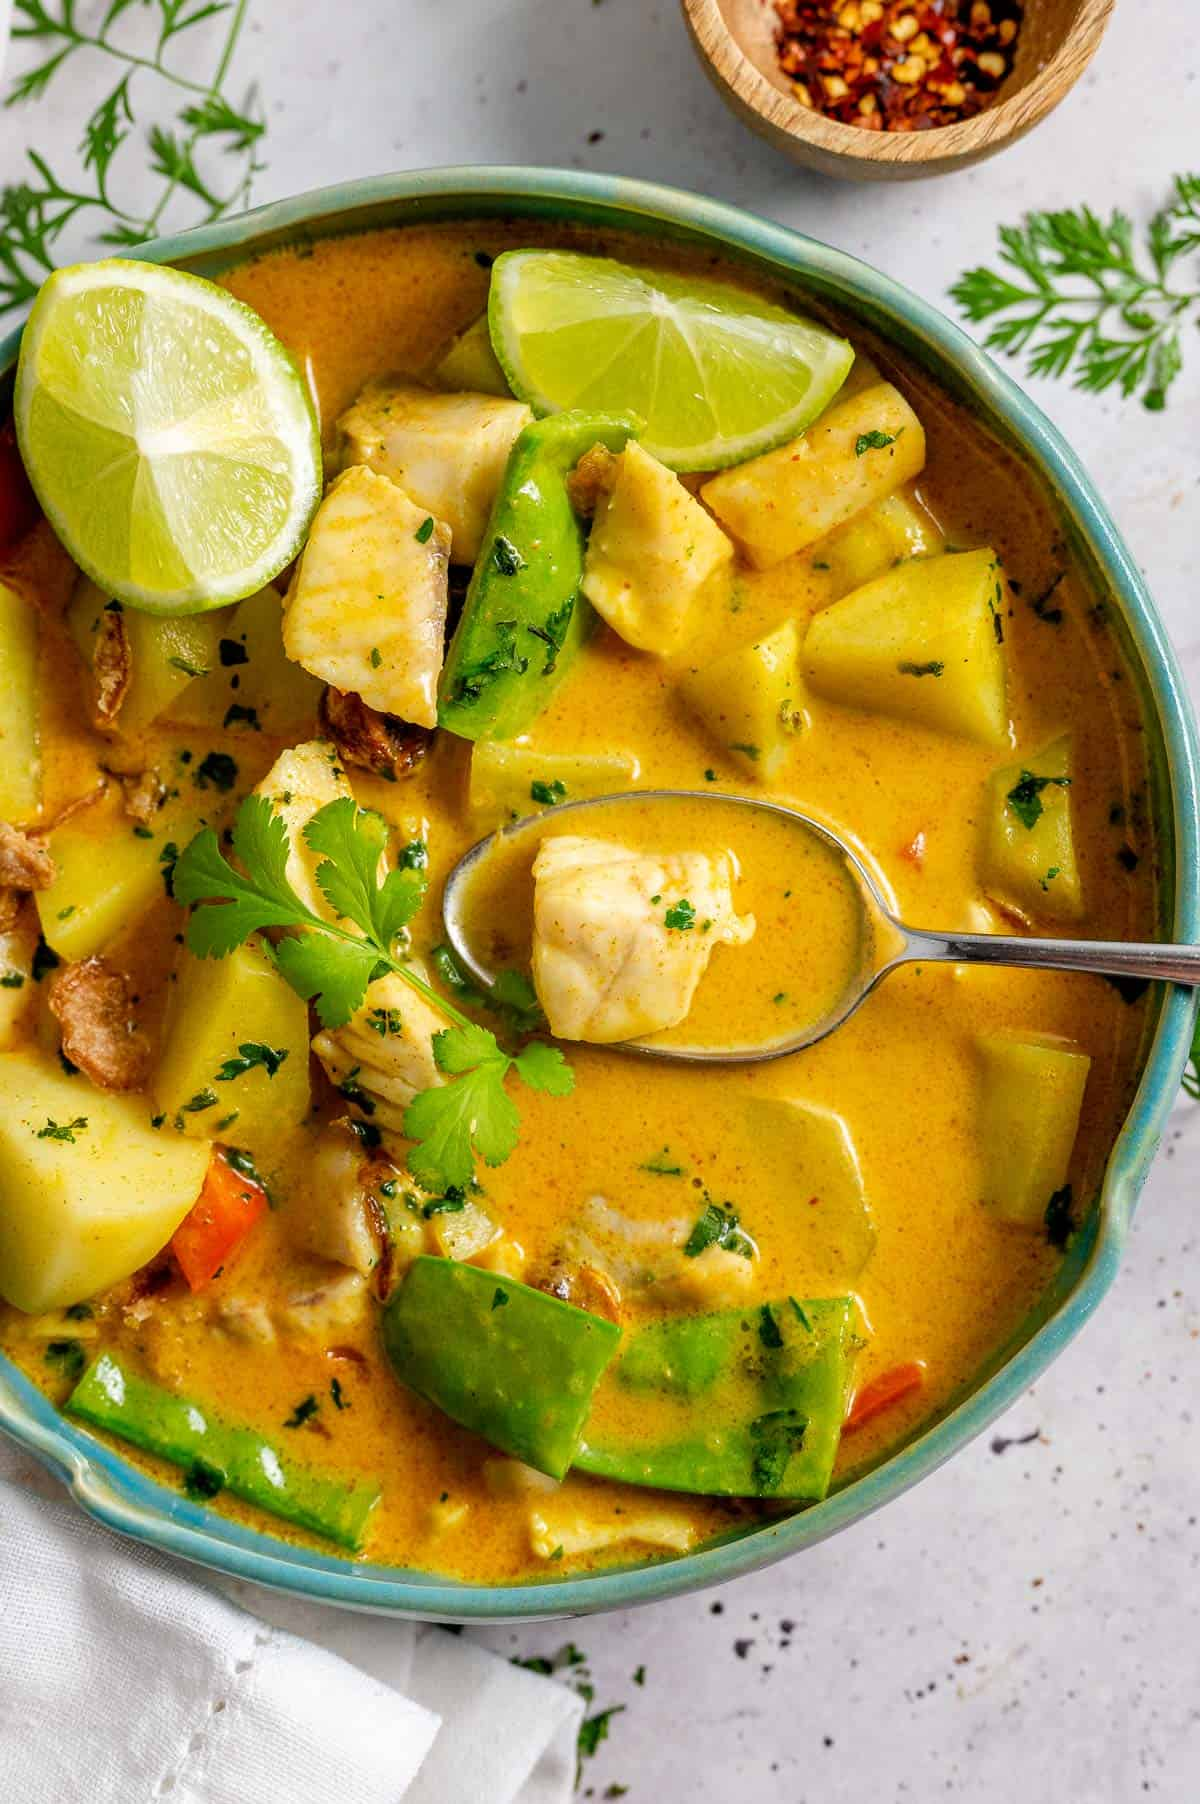 Yellow Fih curry in a blue bowl with a spoon and lime wedges